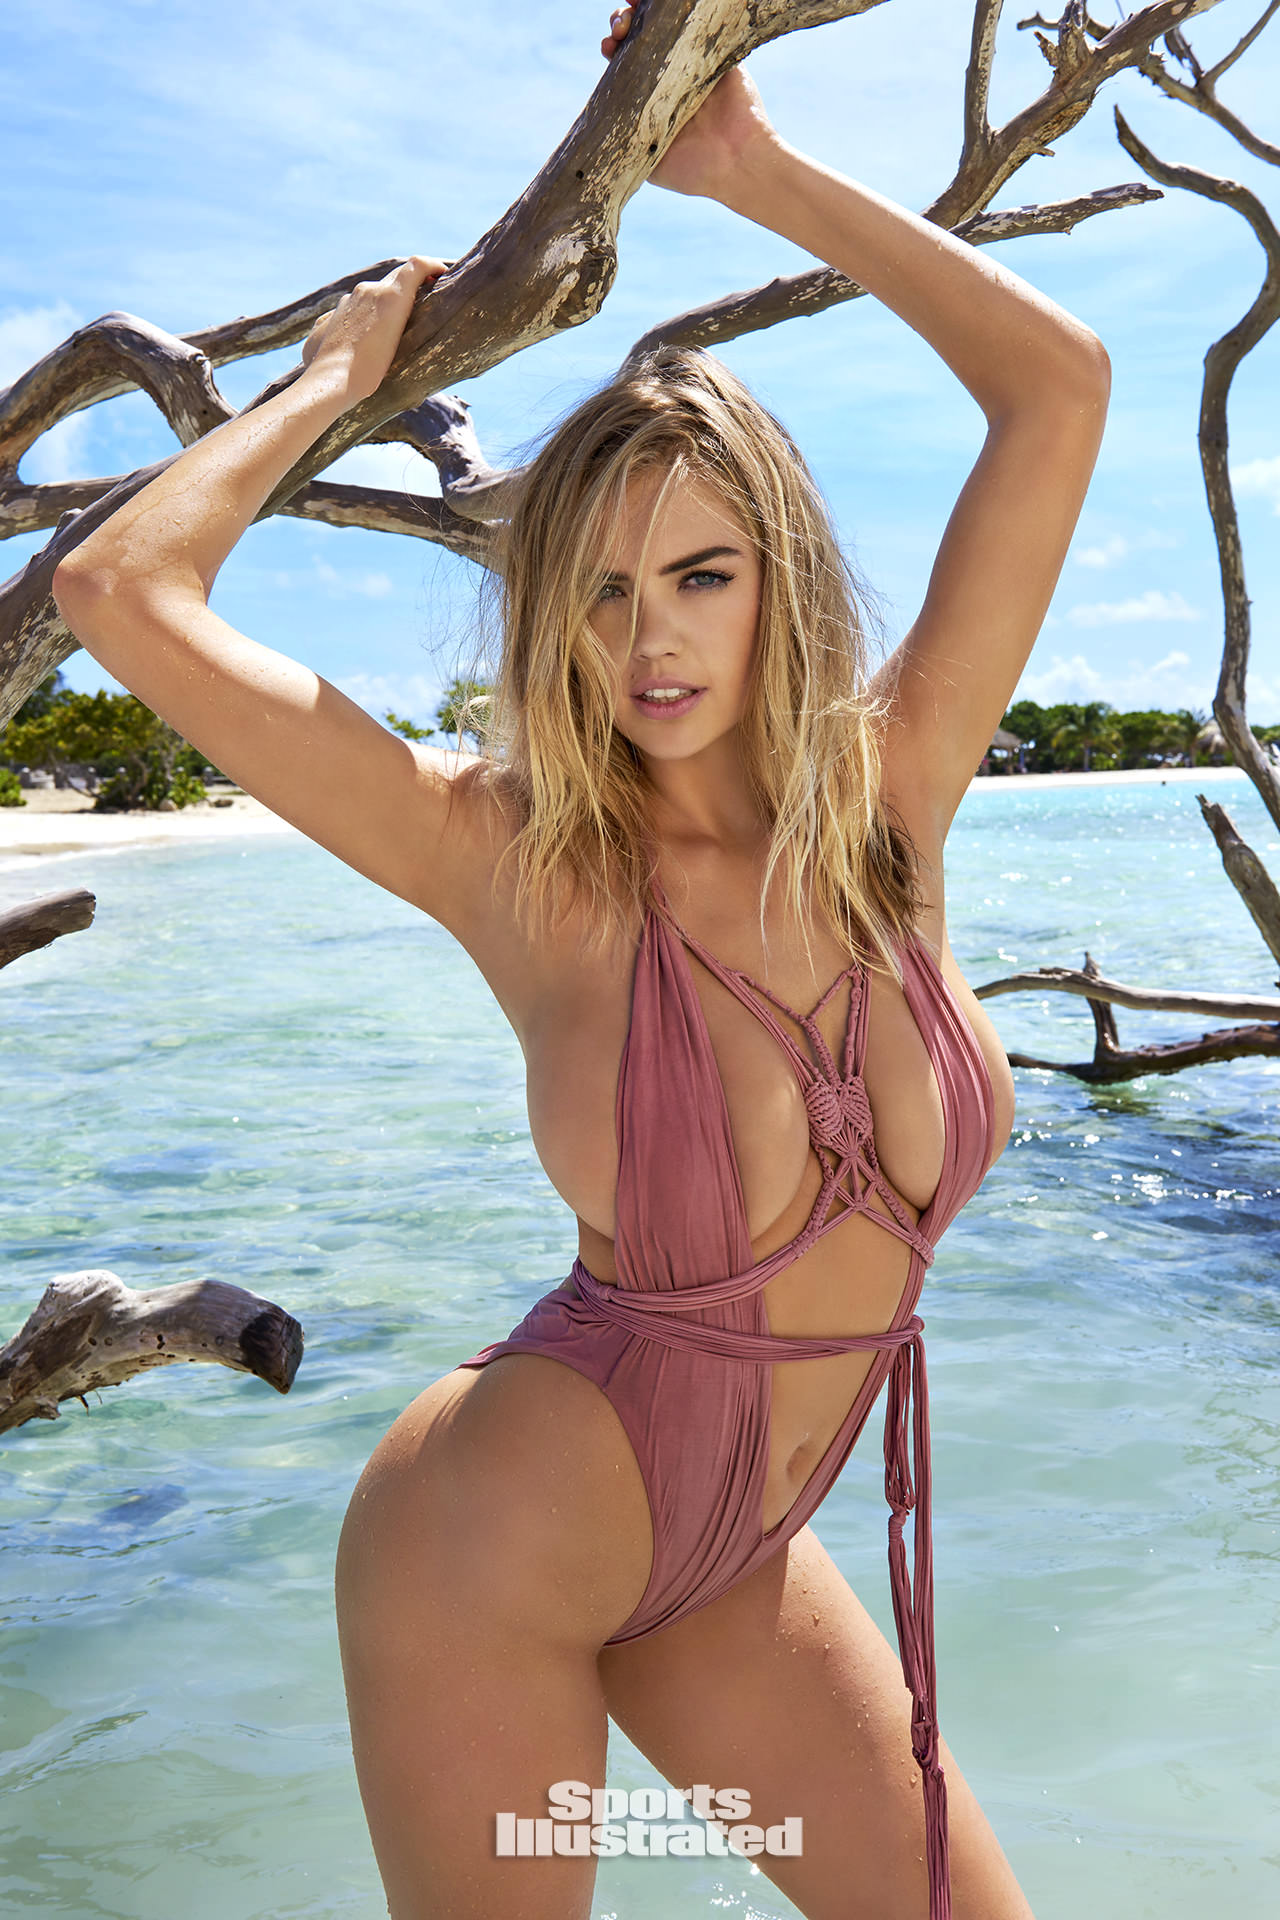 Porno Kate Upton Pornoy nude photos 2019